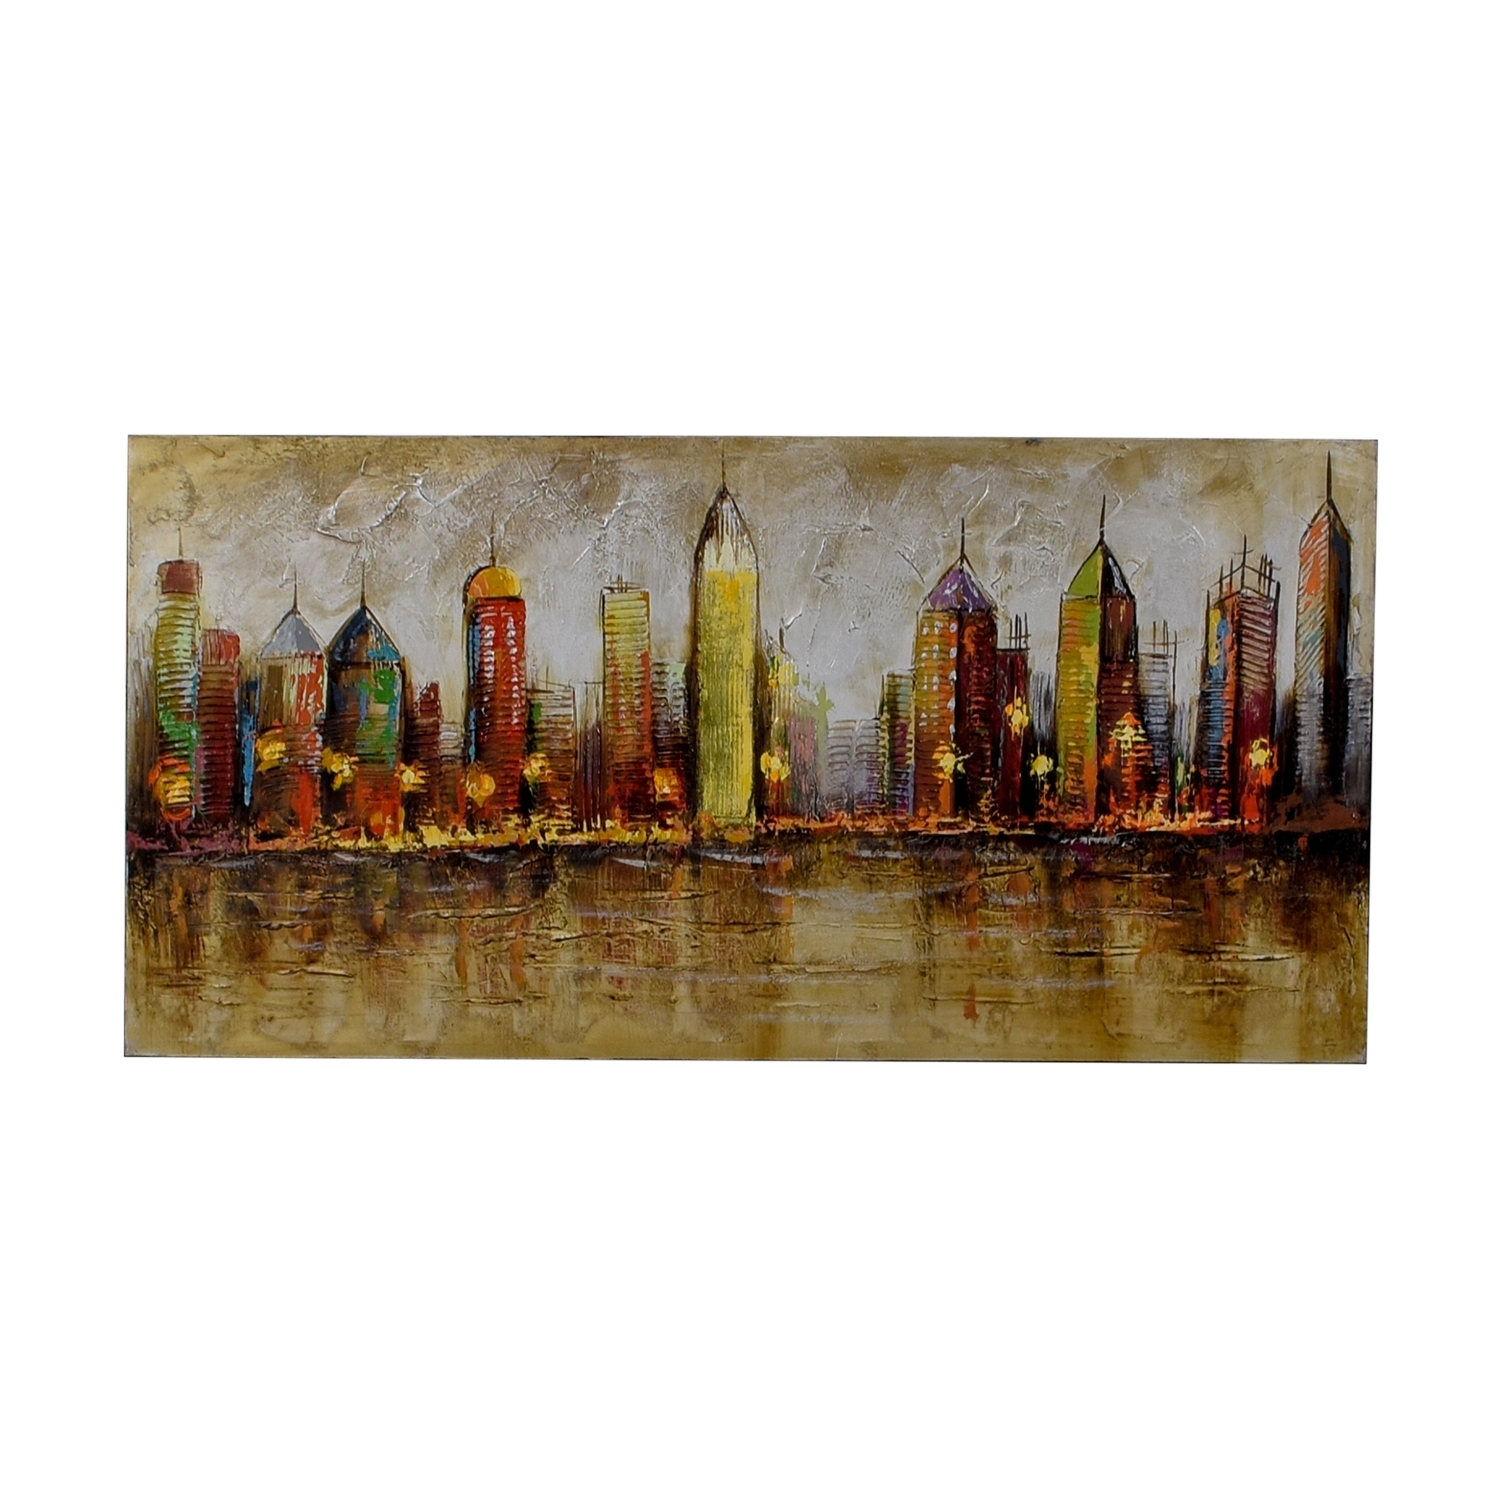 [%80% Off – Pier 1 Imports Pier 1 Imports Cityscape Painting / Decor Within Well Known Pier 1 Wall Art|Pier 1 Wall Art Regarding Popular 80% Off – Pier 1 Imports Pier 1 Imports Cityscape Painting / Decor|Recent Pier 1 Wall Art In 80% Off – Pier 1 Imports Pier 1 Imports Cityscape Painting / Decor|Most Current 80% Off – Pier 1 Imports Pier 1 Imports Cityscape Painting / Decor Within Pier 1 Wall Art%] (View 2 of 20)